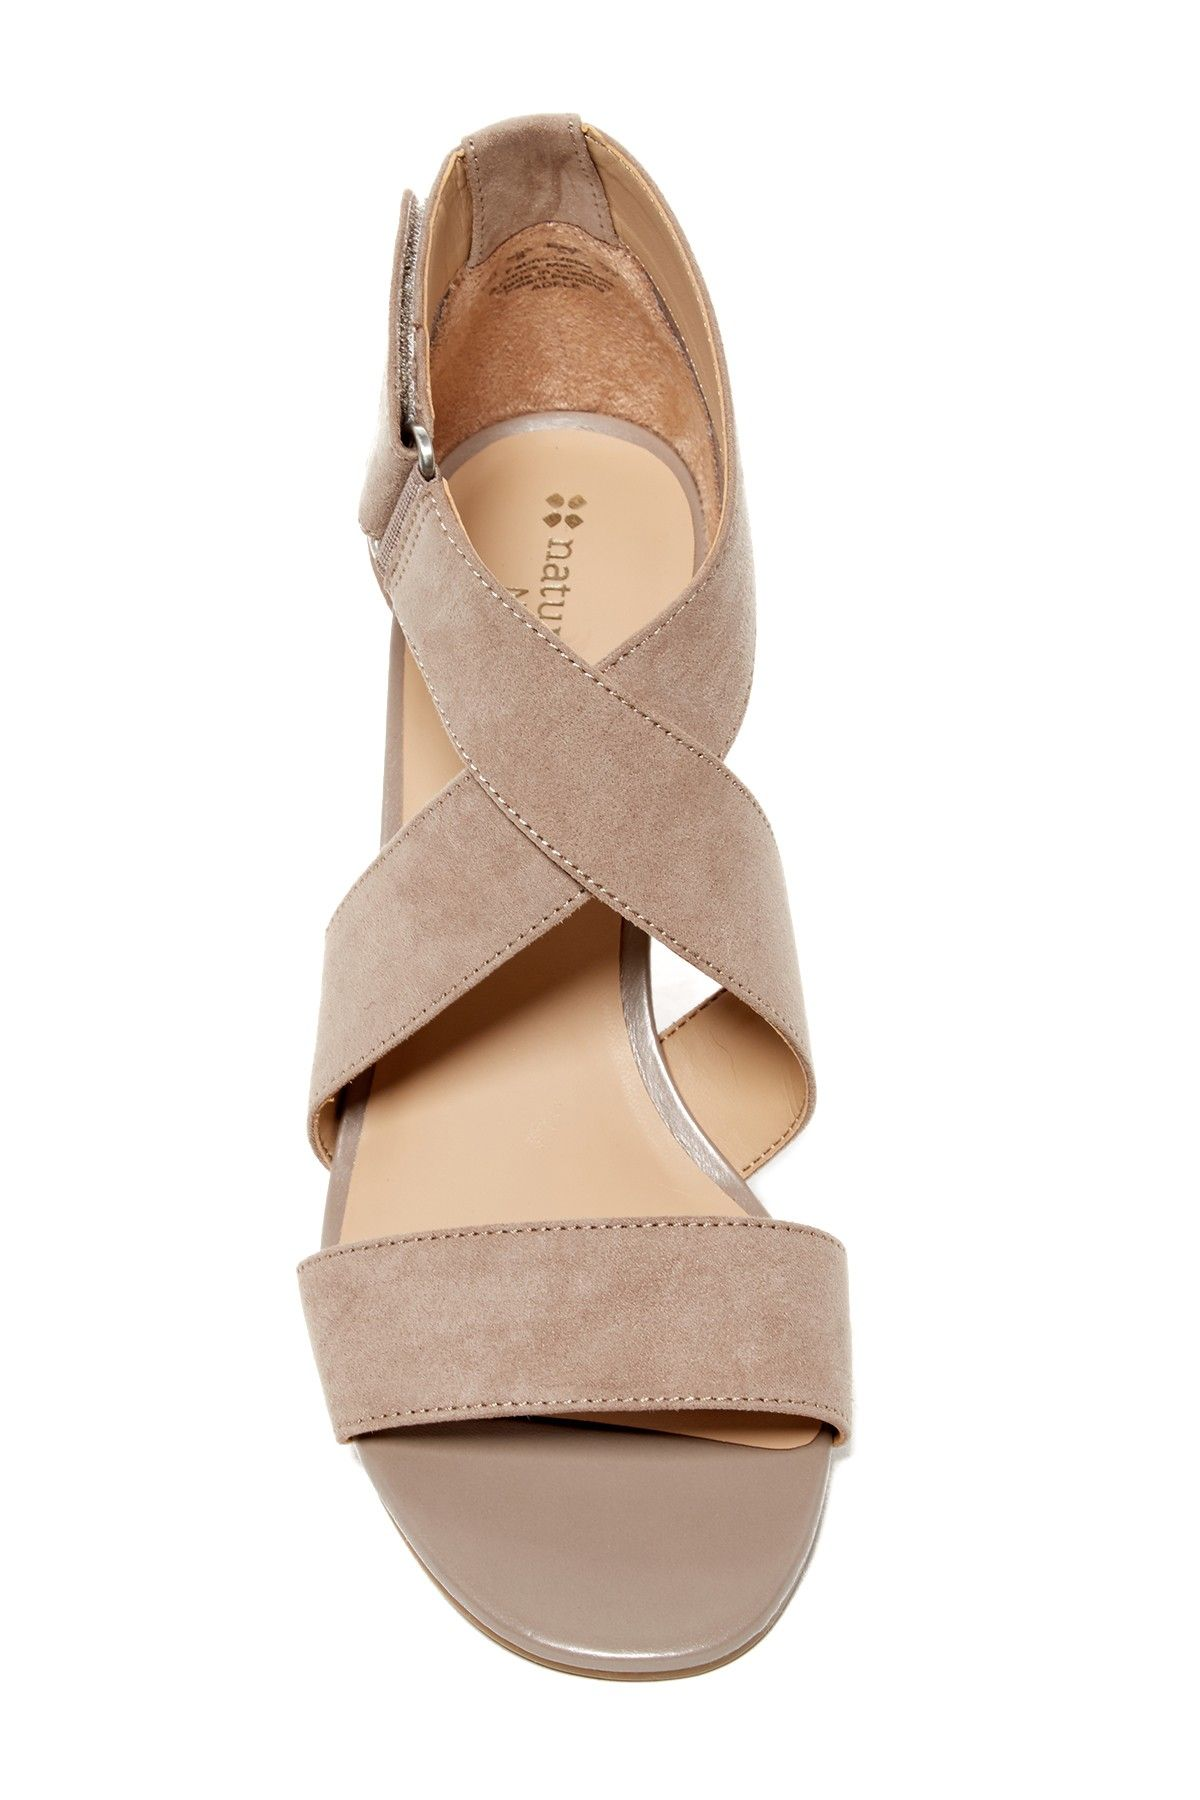 2f3fd7bf430 Naturalizer - Adele Heeled Sandal is now 42% off. Free Shipping on orders  over  100.